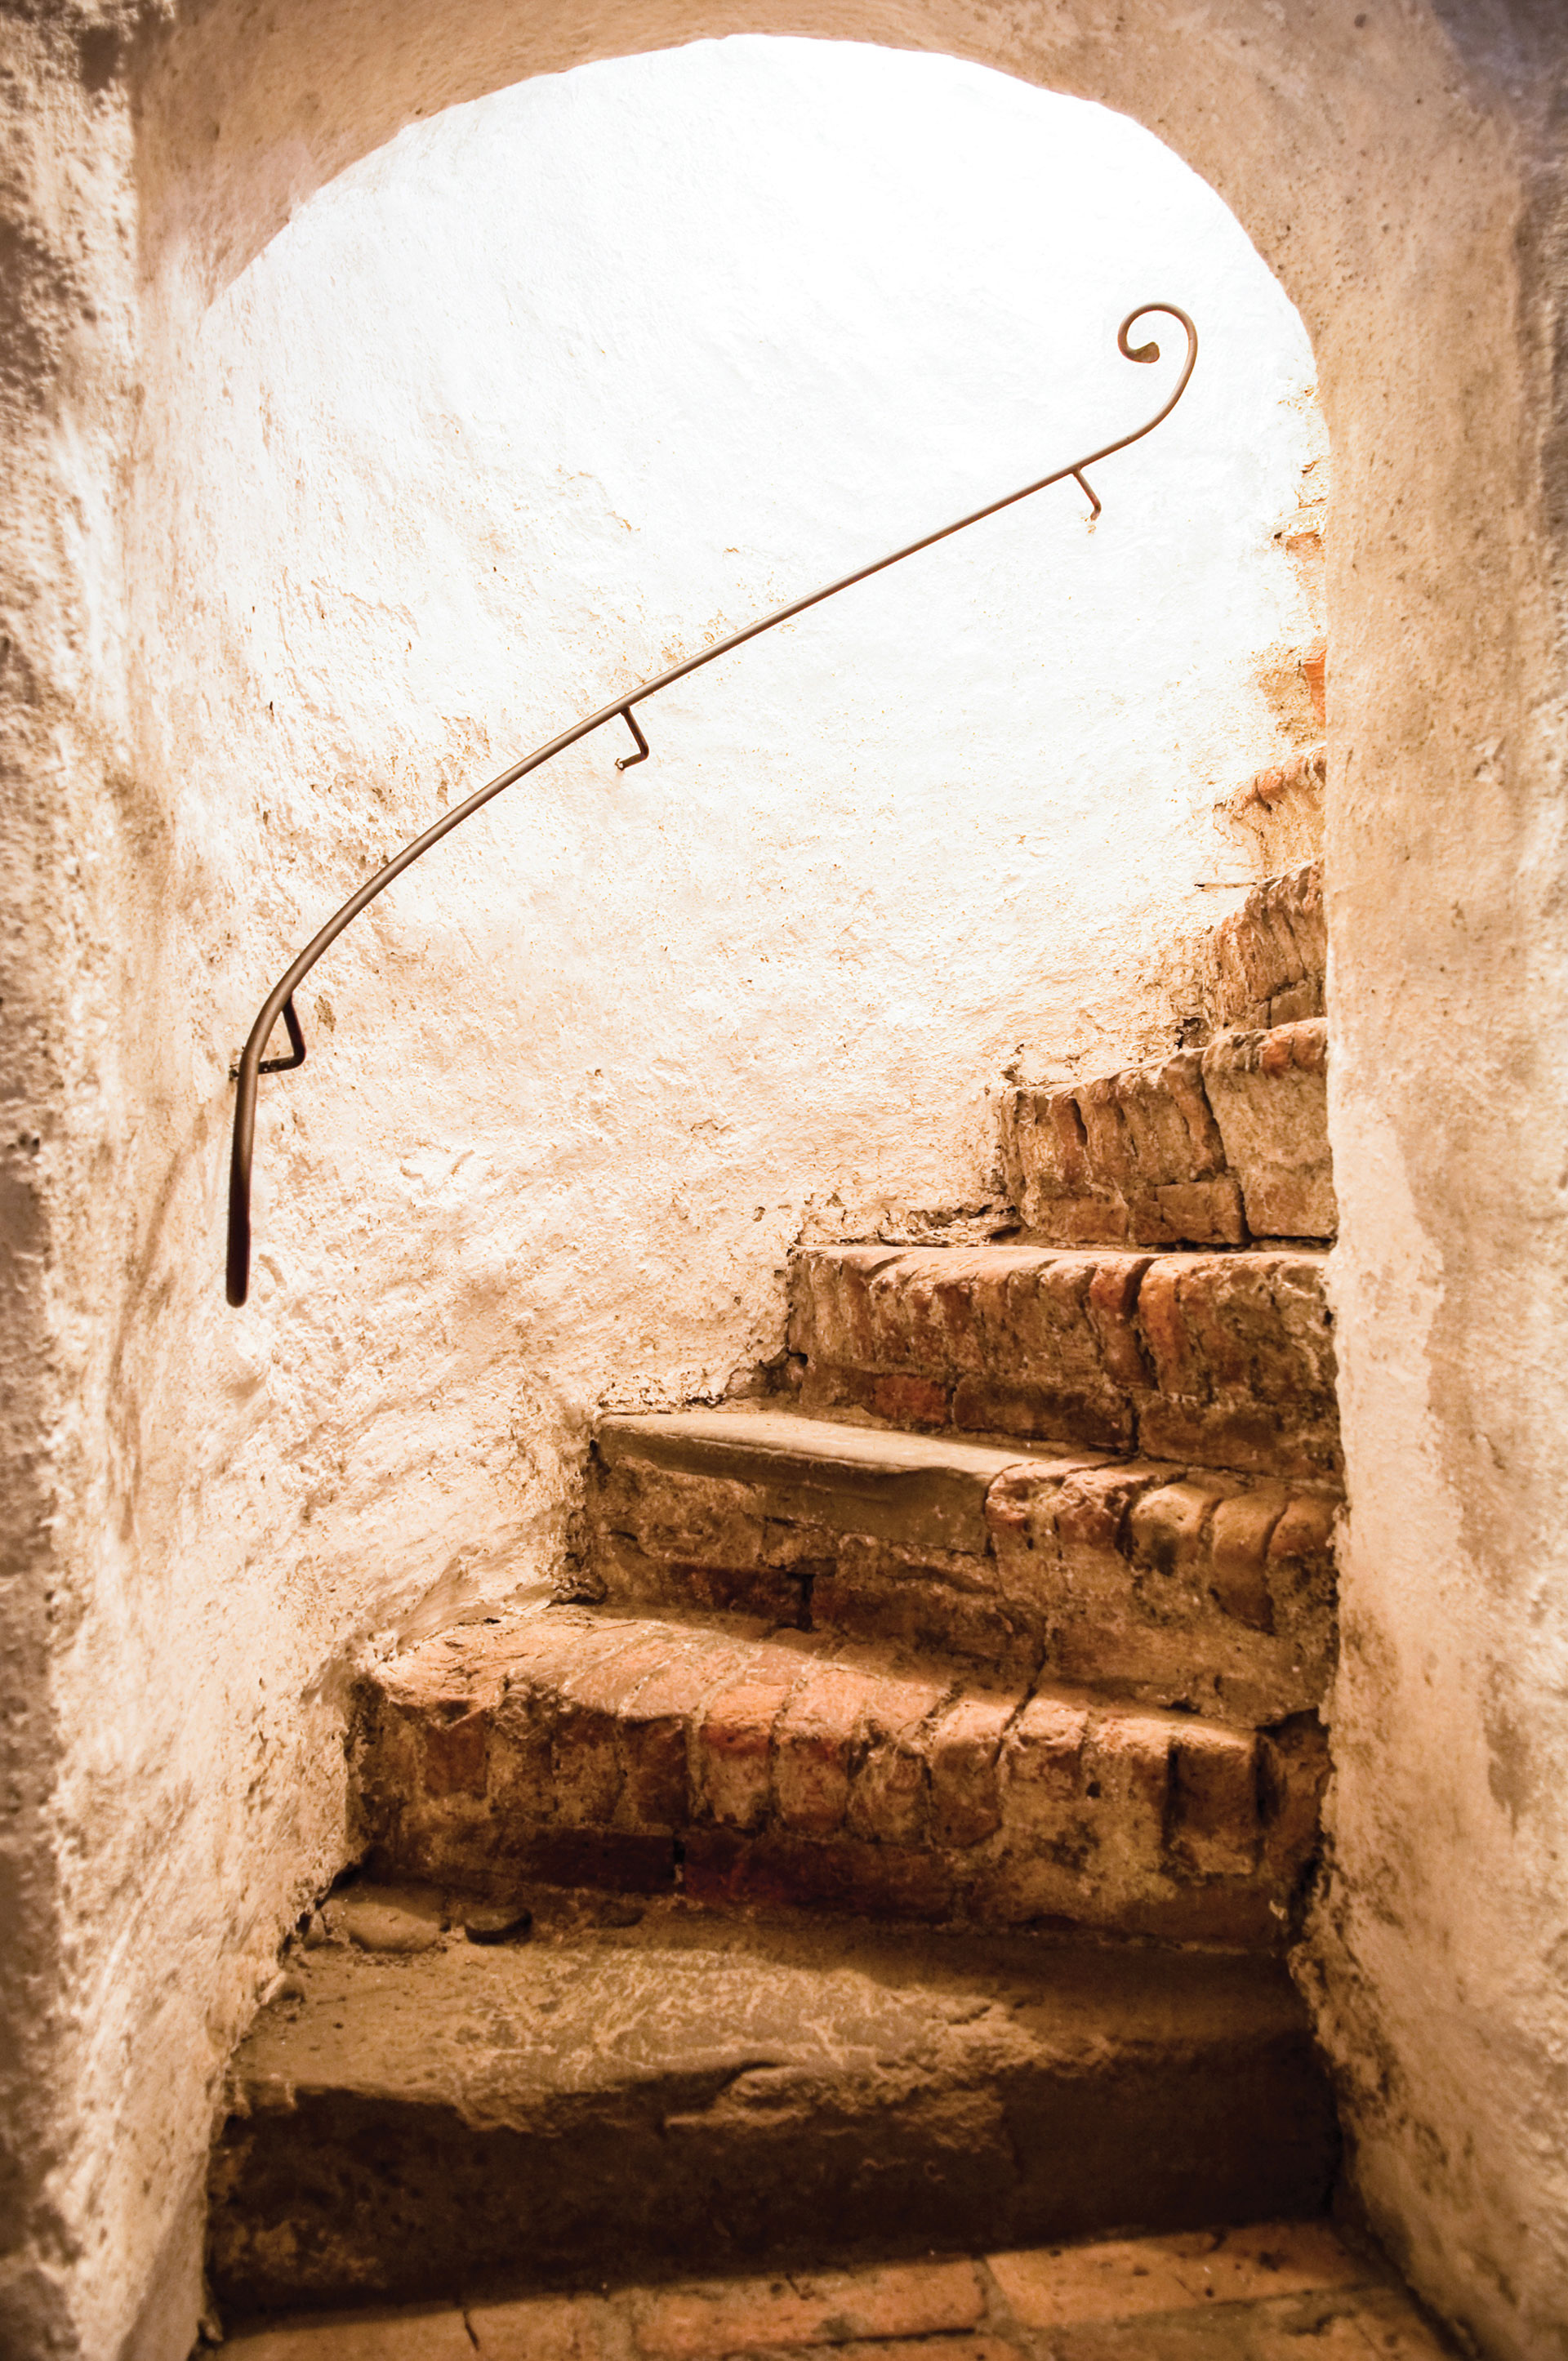 Approaching the top of a Medieval spiral stone staircase, light pouring in